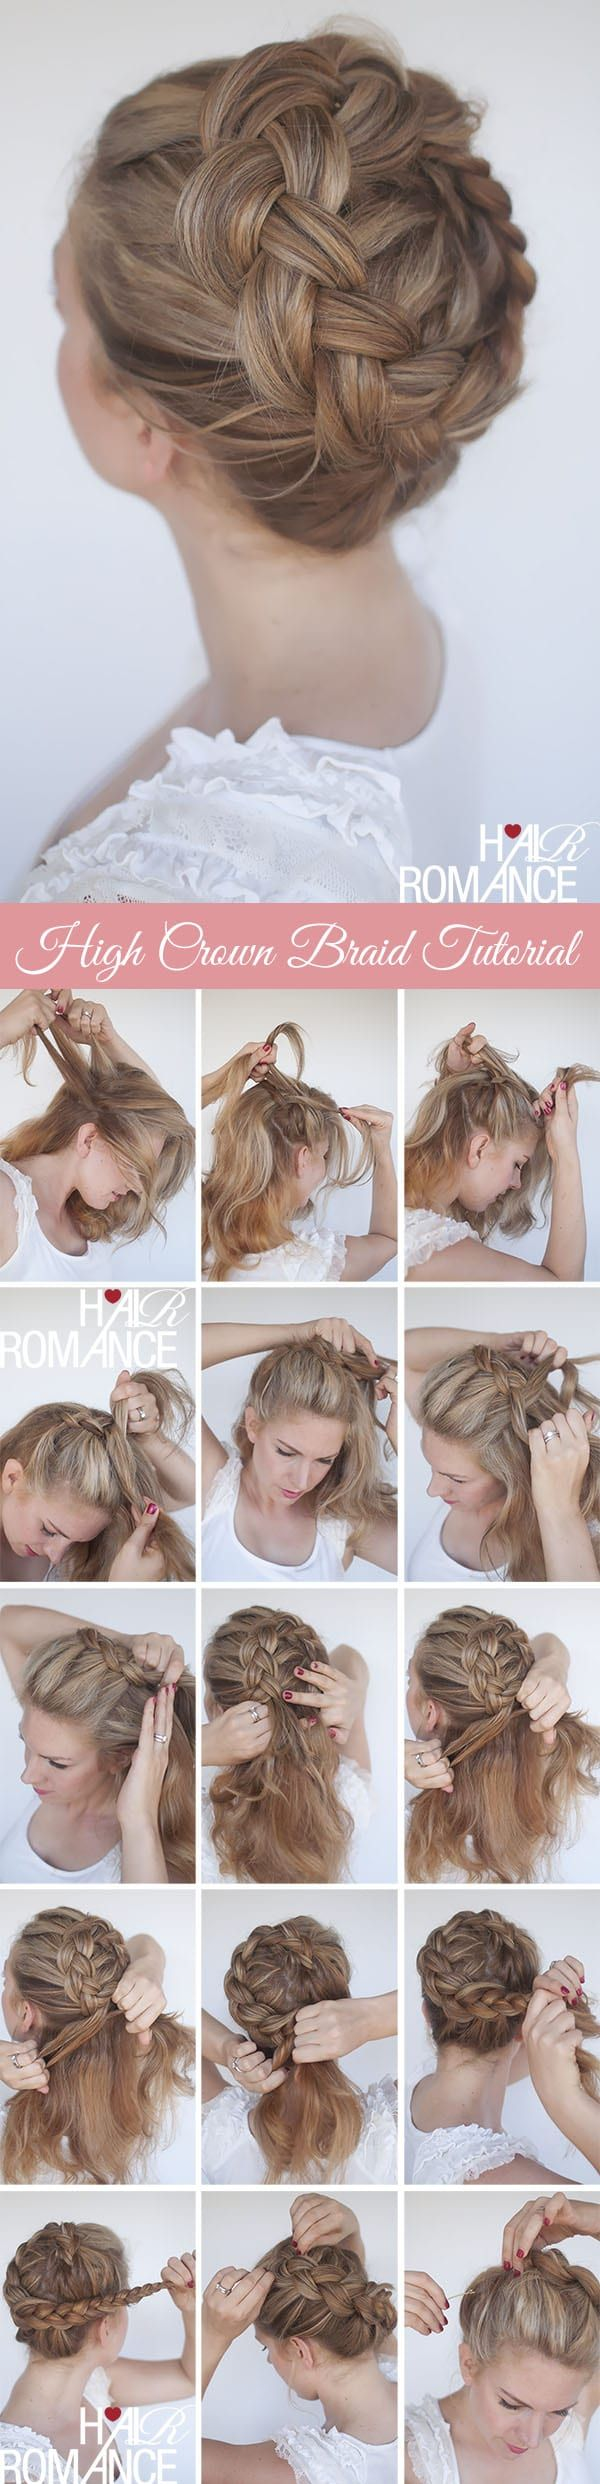 easy diy tutorials for glamorous and cute hairstyle penteados